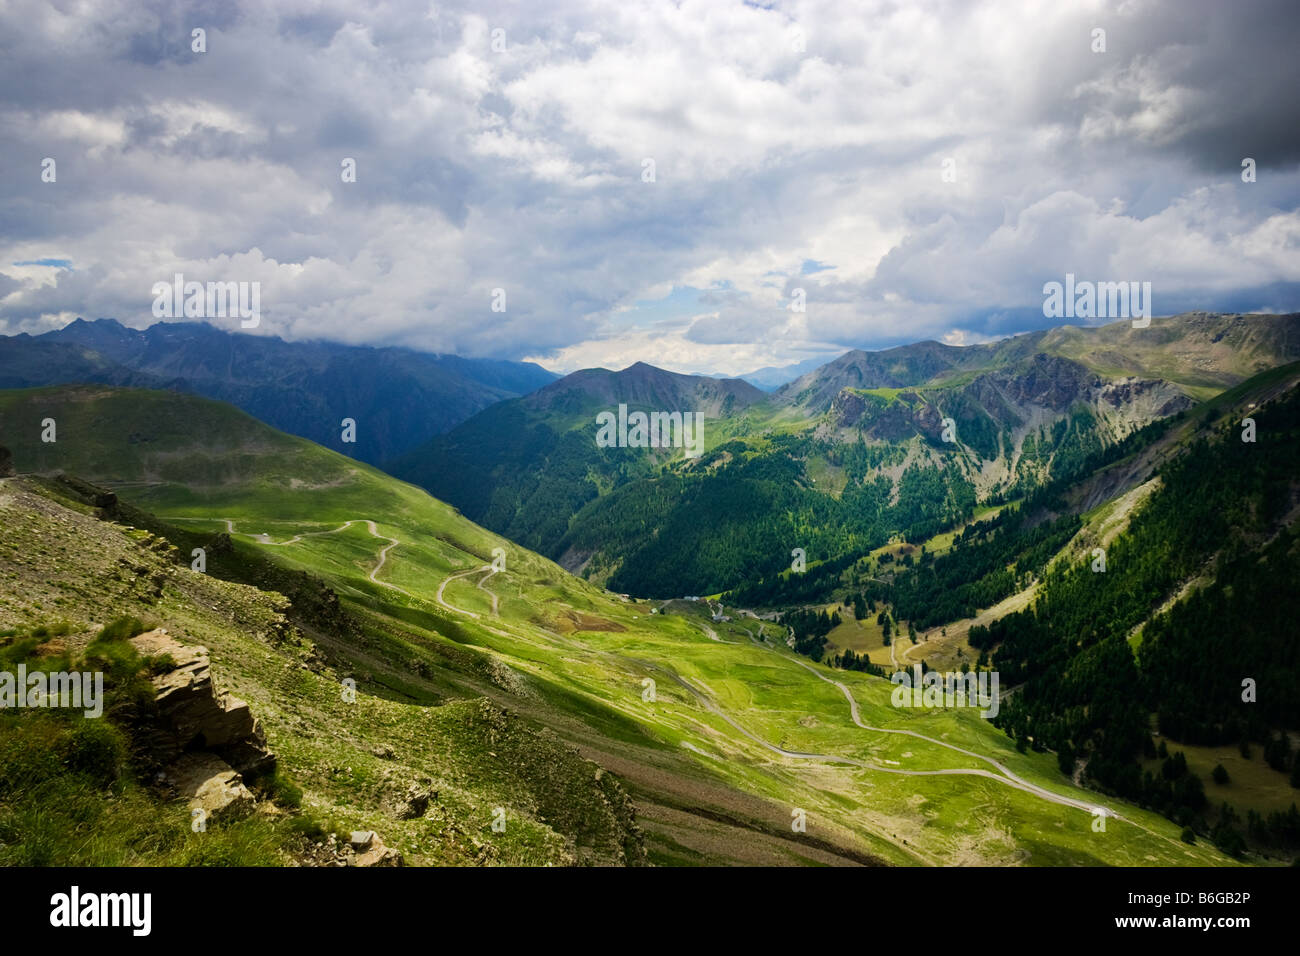 View from the route de la Bonette in the Alpes Maritimes, PACA, France - Stock Image